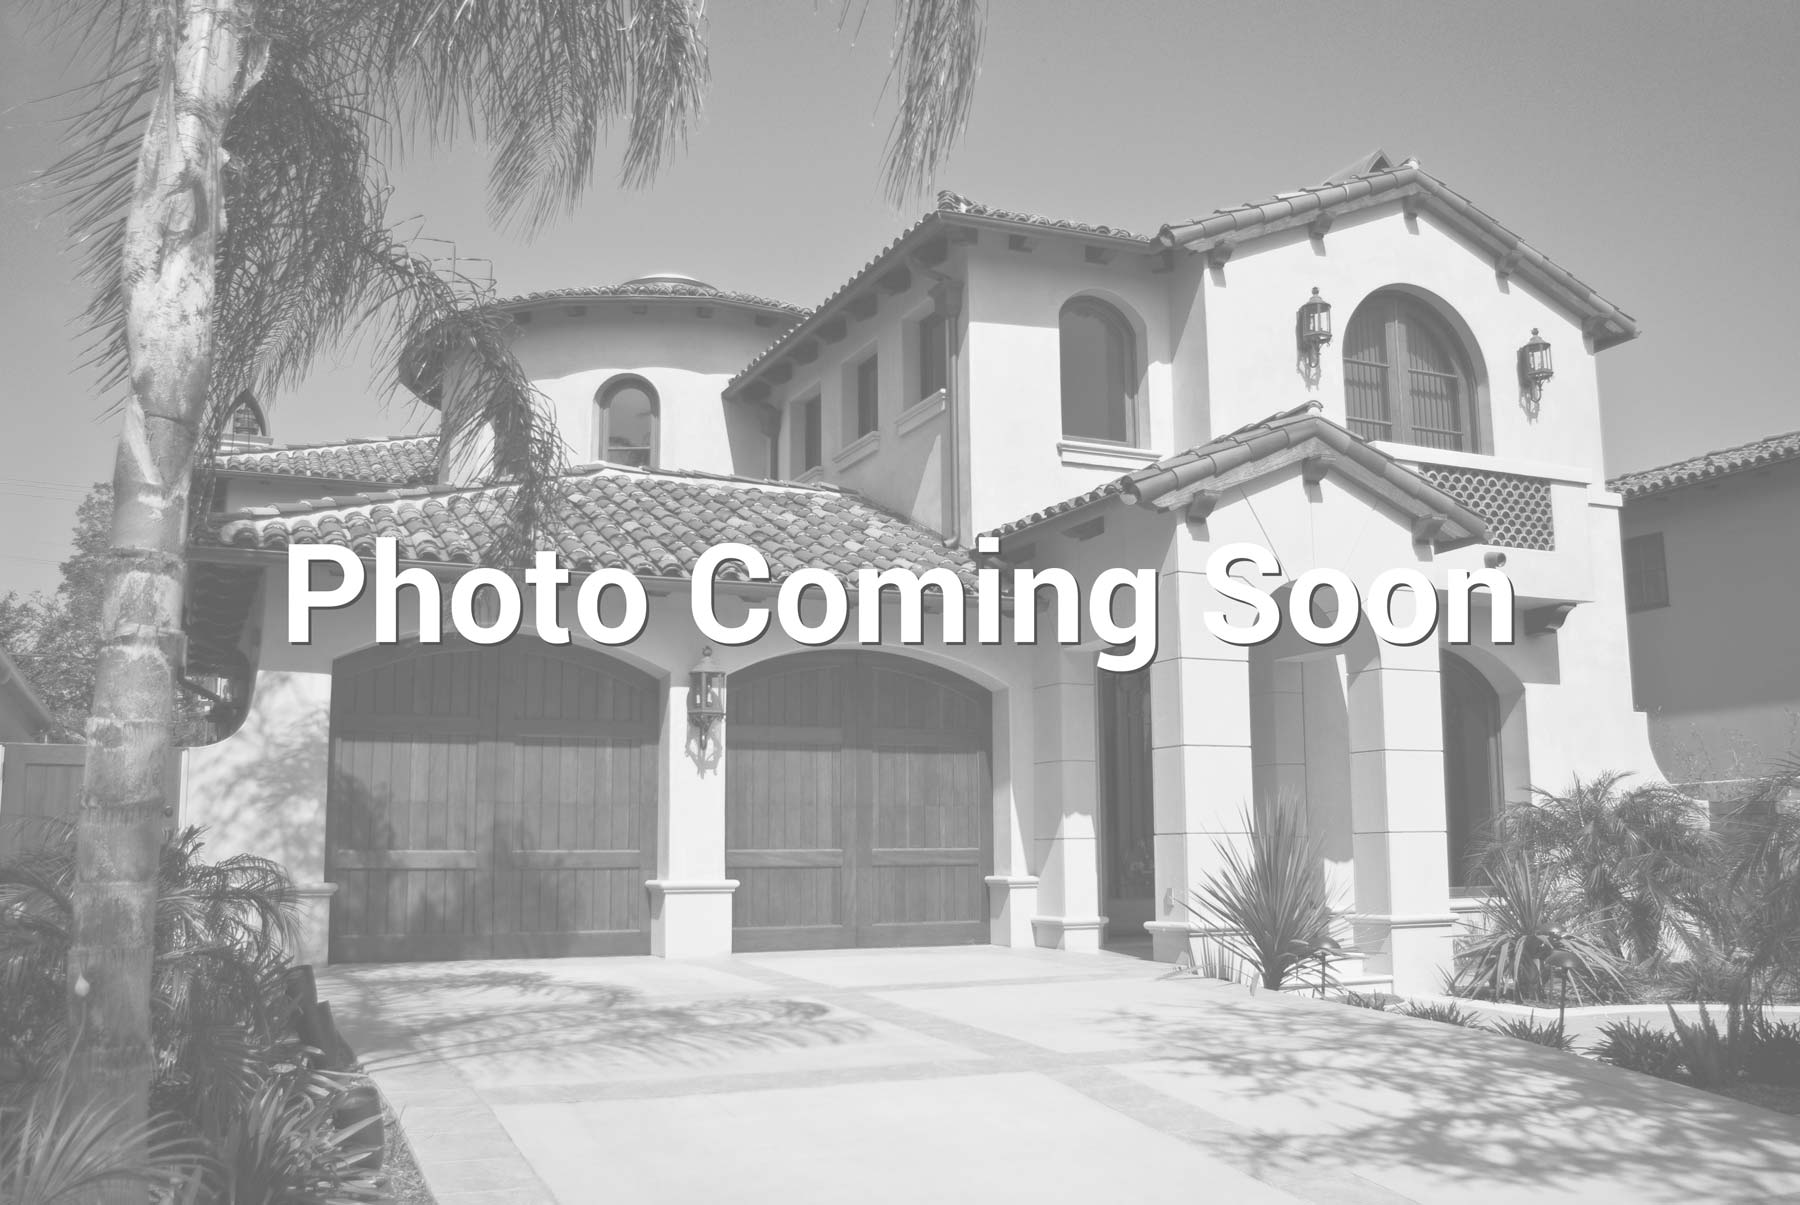 $479,900 - 3Br/2Ba -  for Sale in Chula Vista, Chula Vista